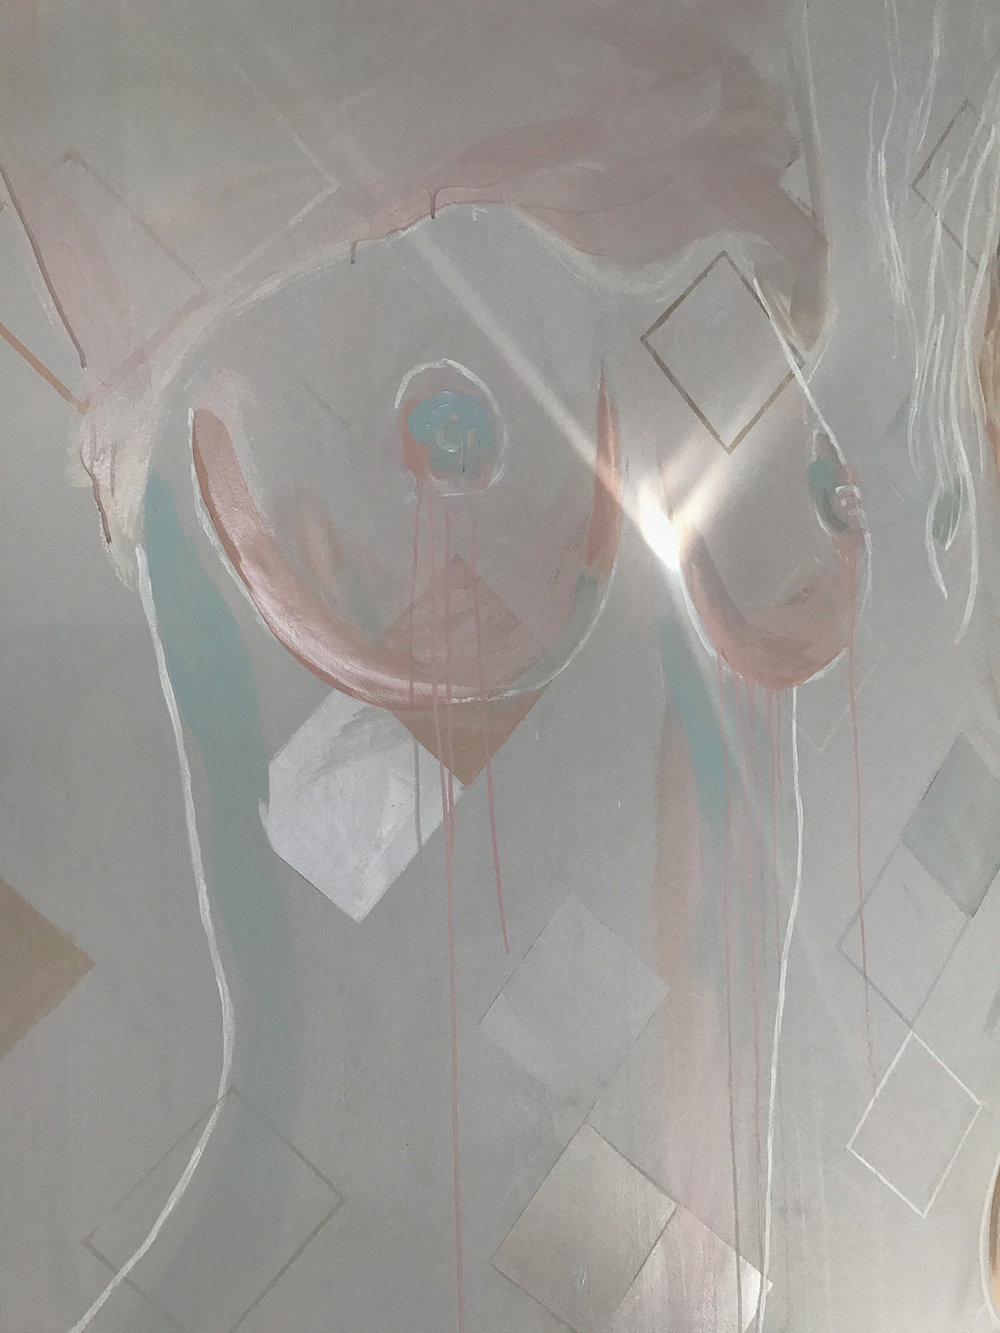 Close up of topless woman mural - female is taking her top off and exposing her naked breasts. Painted in pastel and metallic colours, light illuminates the woman's heart.